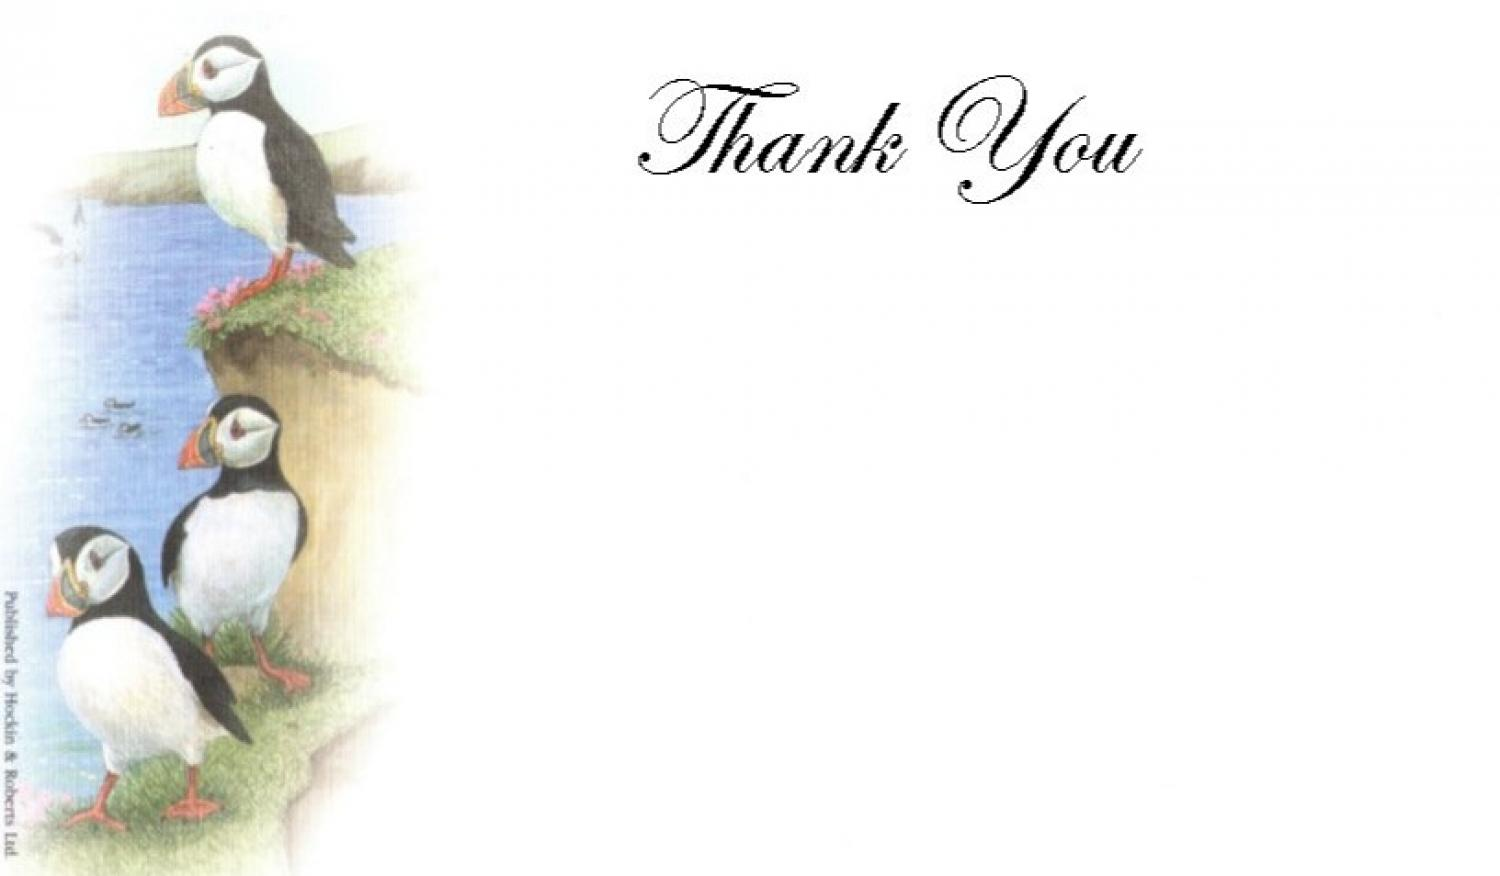 Thank You Cards - Puffins